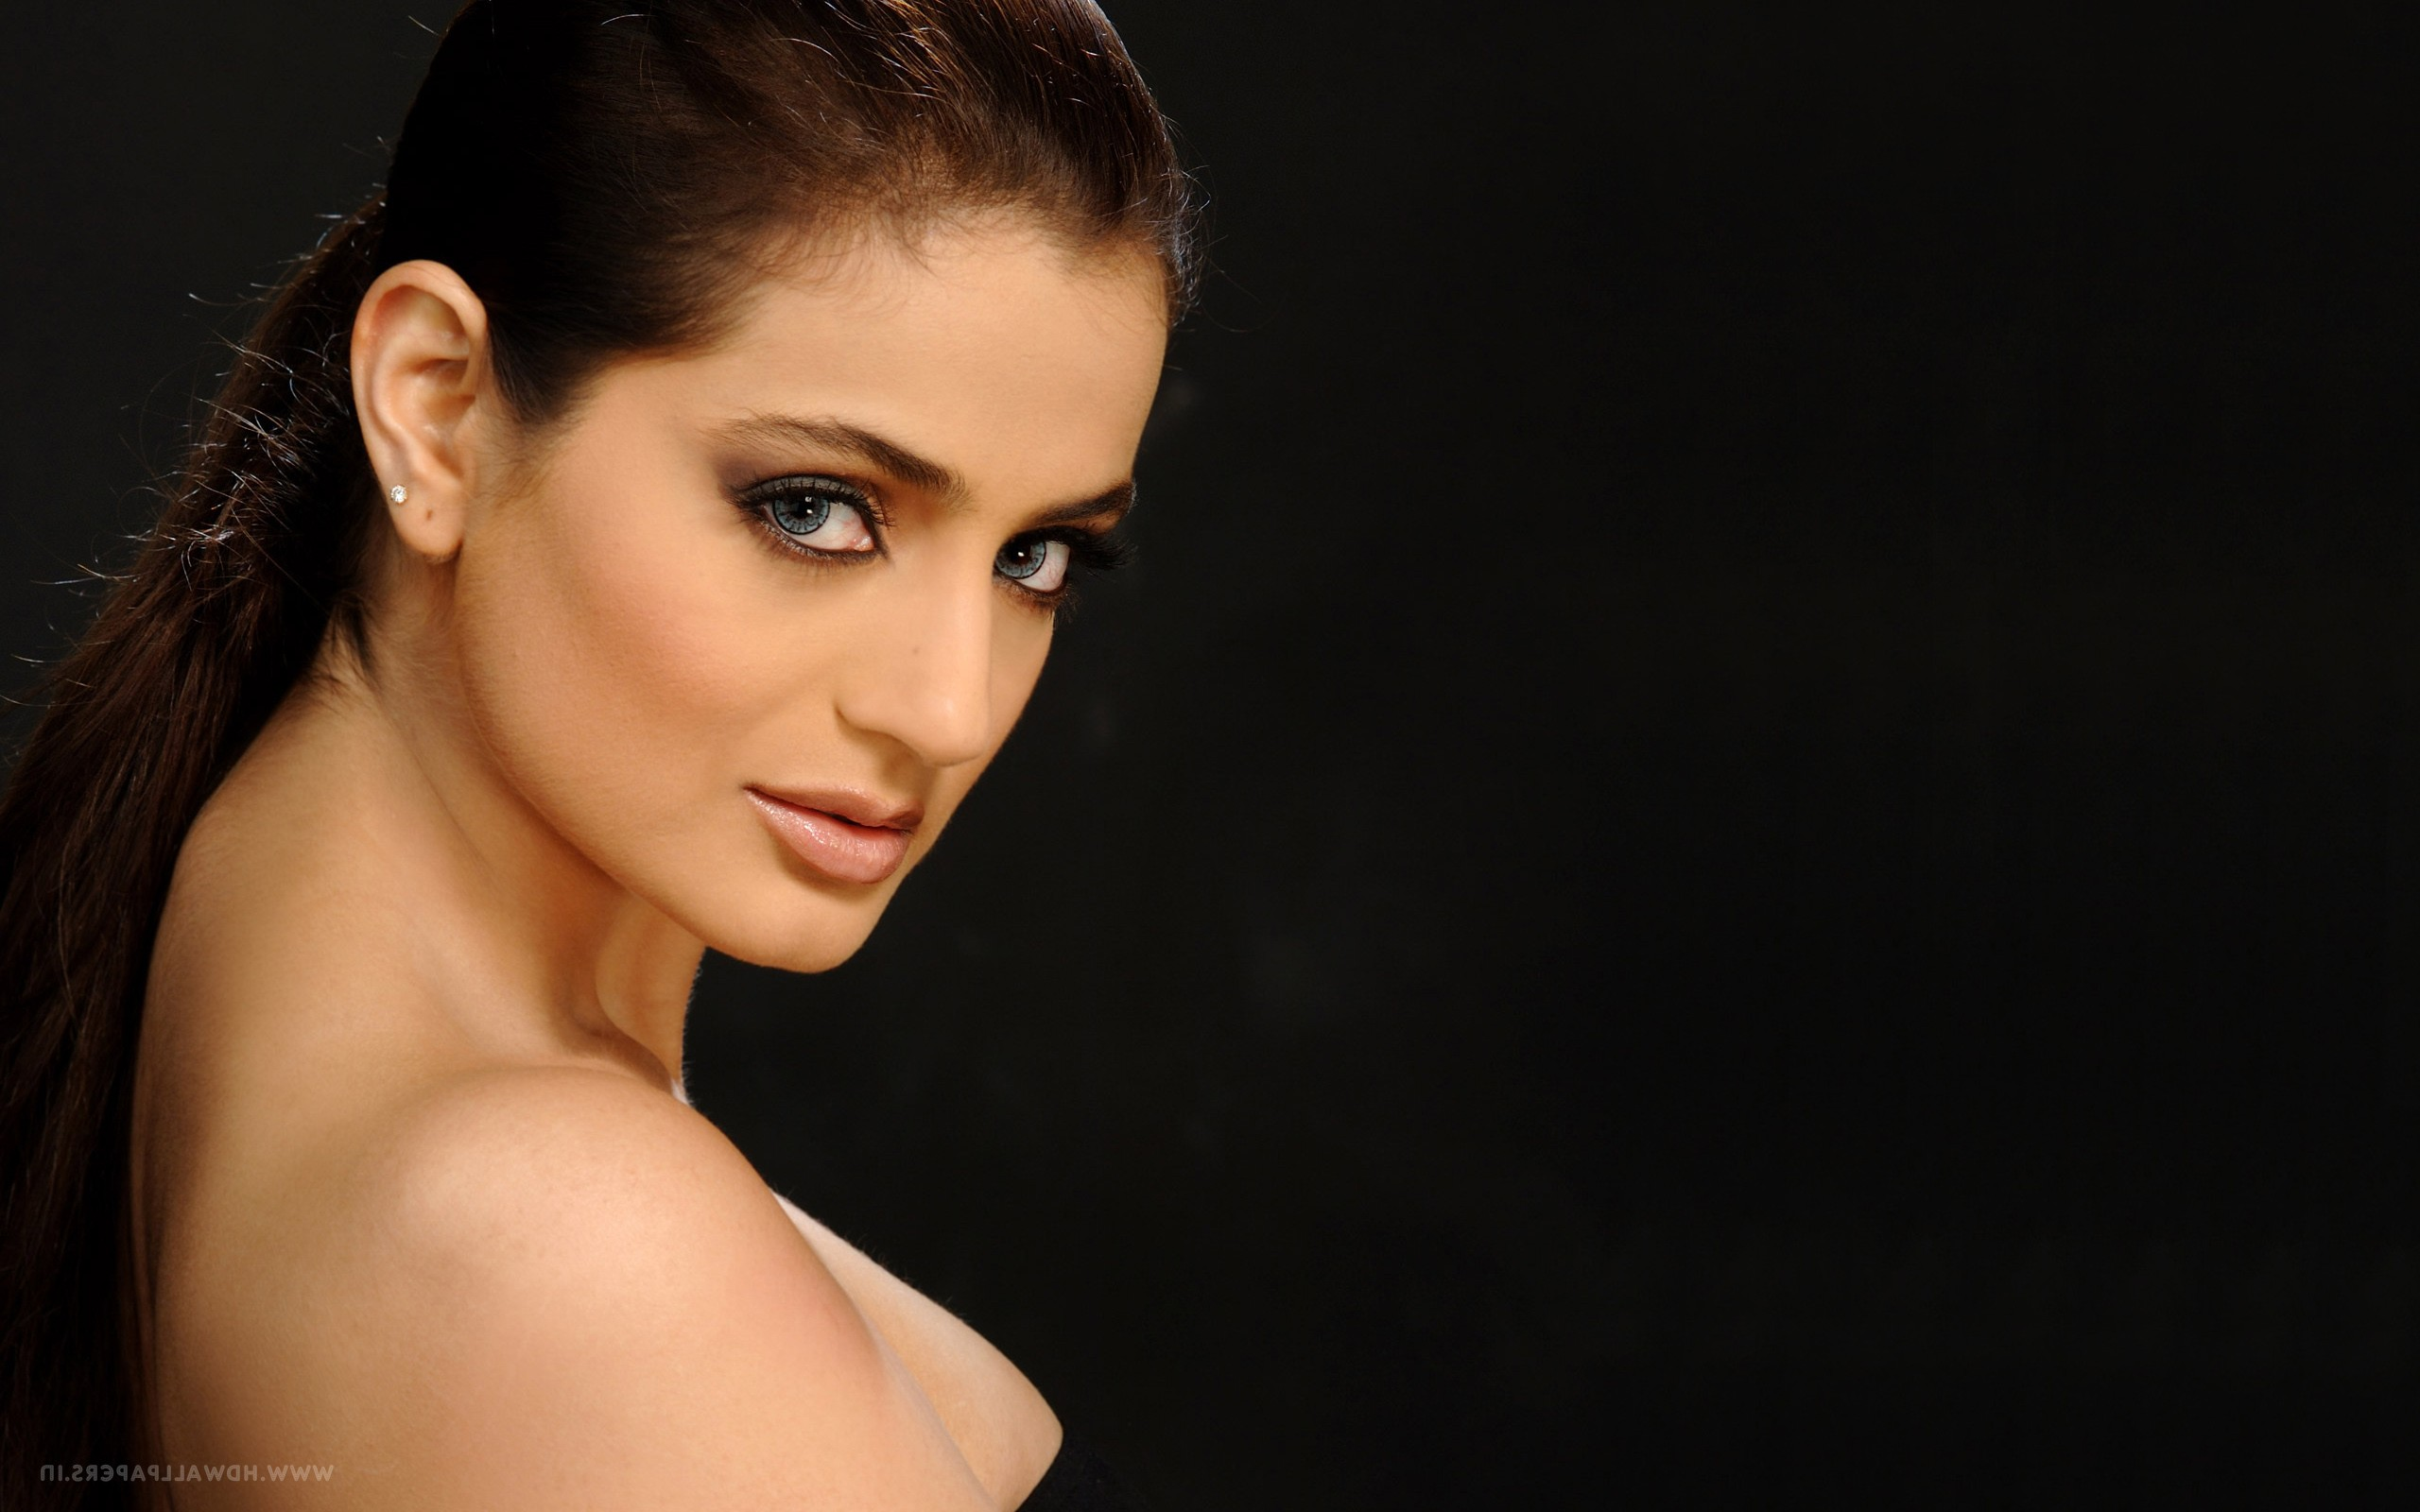 ameesha patel 2, hd indian celebrities, 4k wallpapers, images